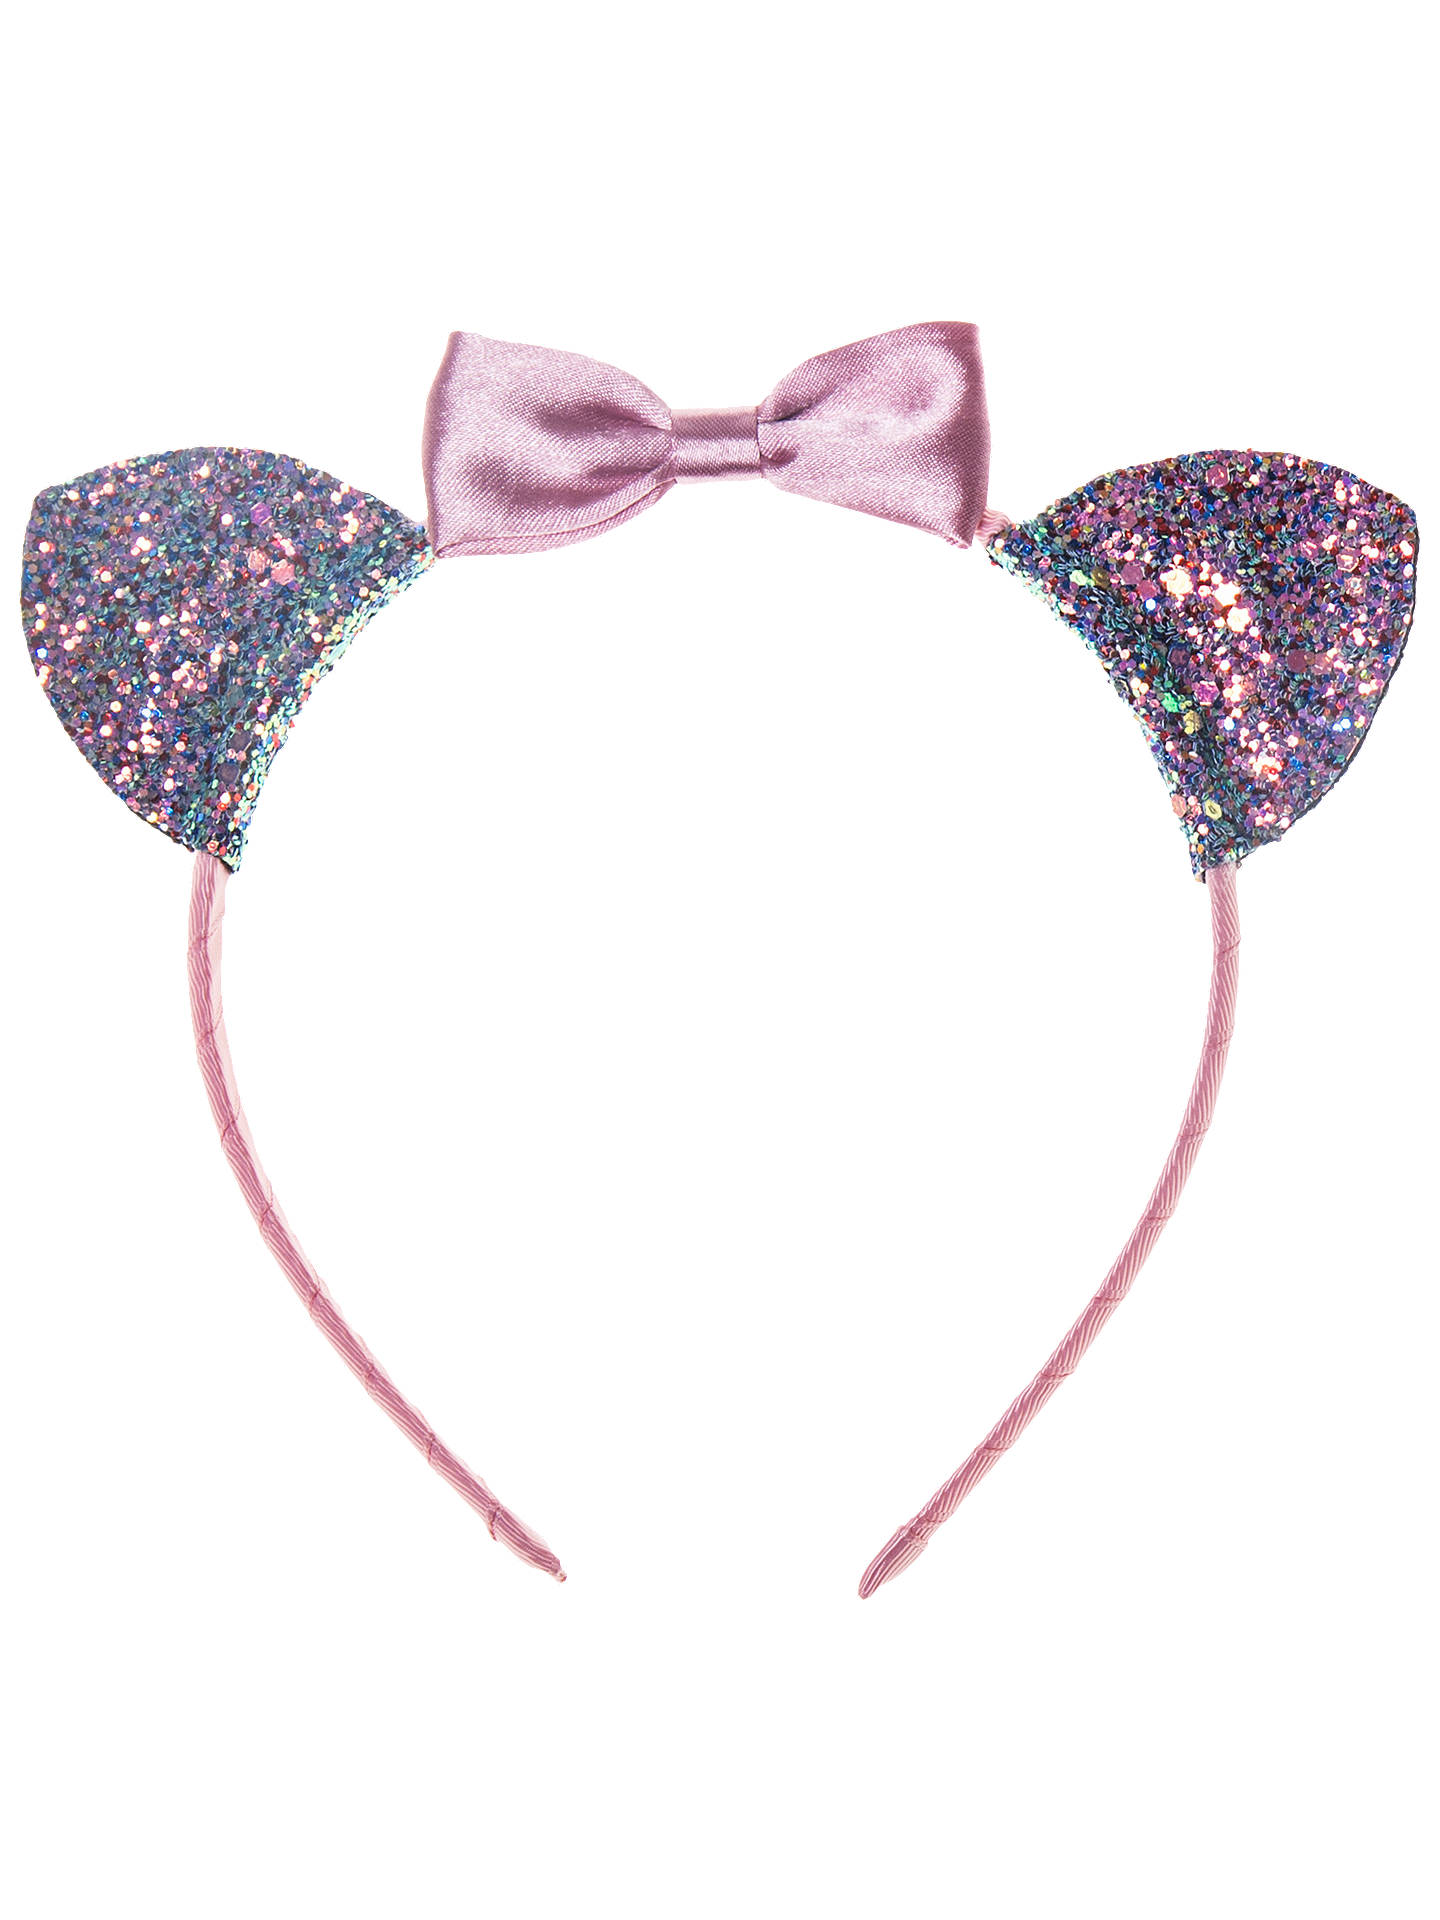 BuyRockahula Girls' Glitter Cat Alice Band, Pink Online at johnlewis.com